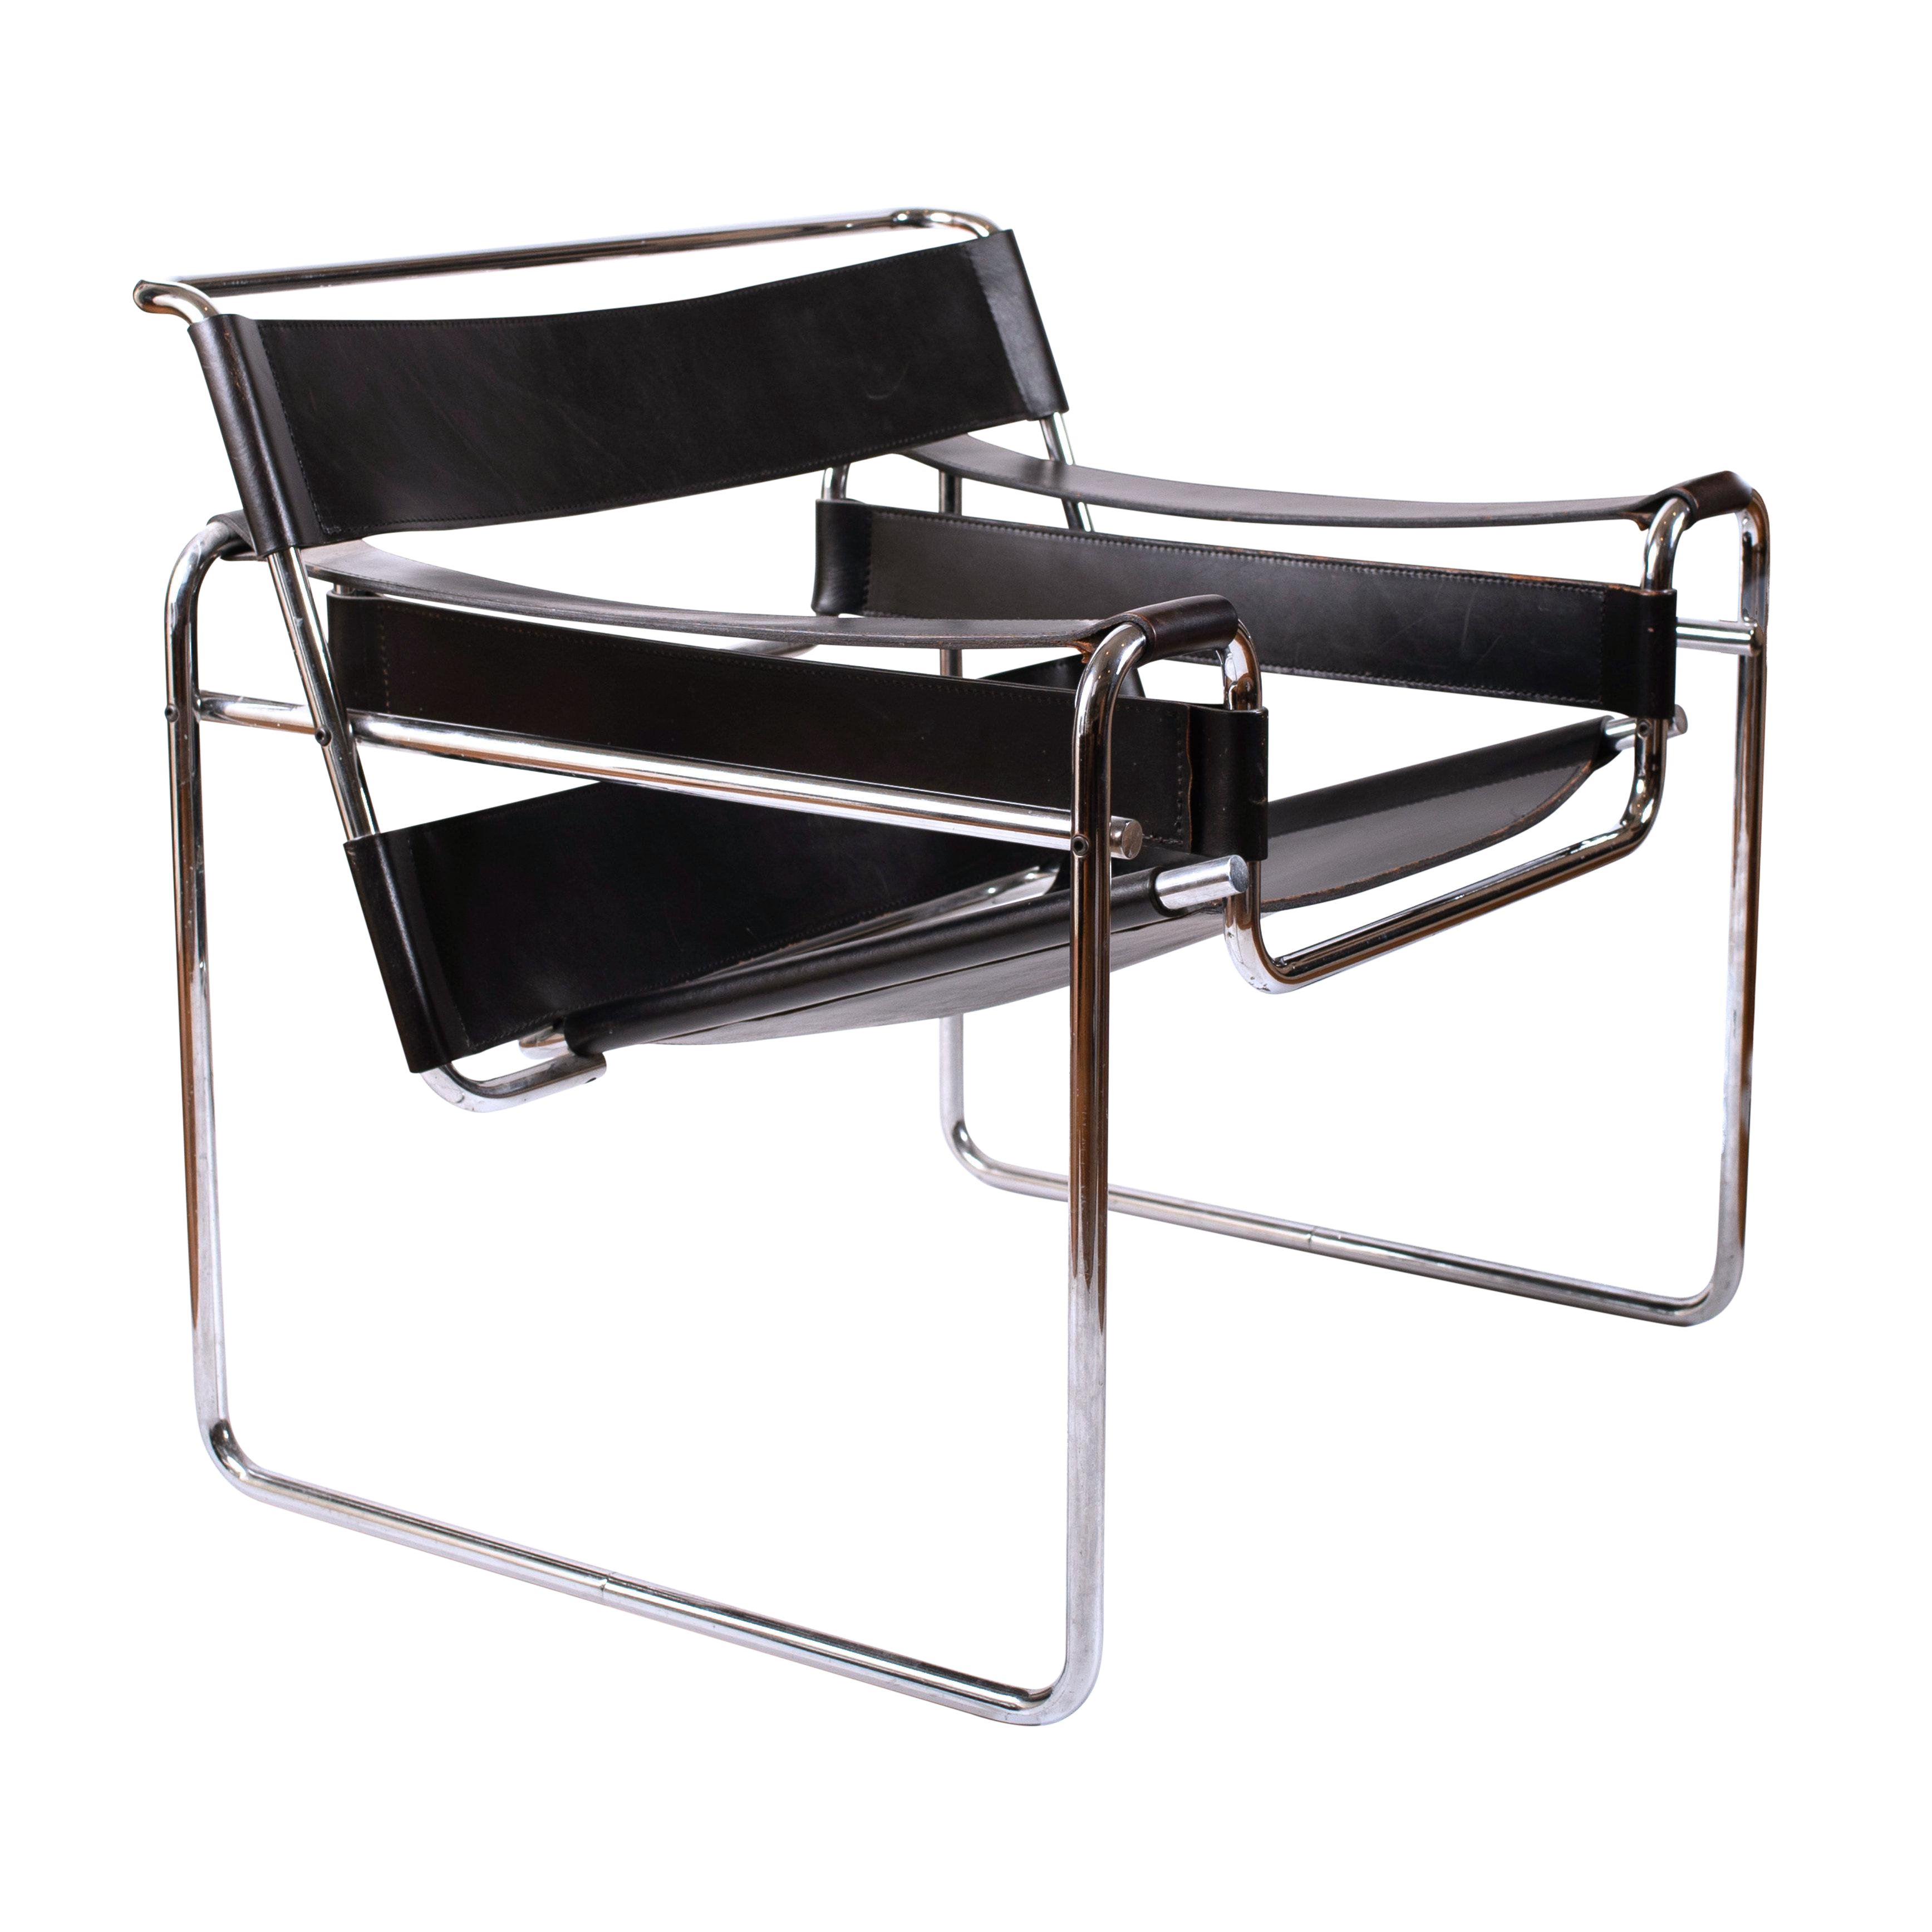 Miraculous Vintage Marcel Breuer Mid Century Modern Wassily Black Strap Leather Chair Inzonedesignstudio Interior Chair Design Inzonedesignstudiocom